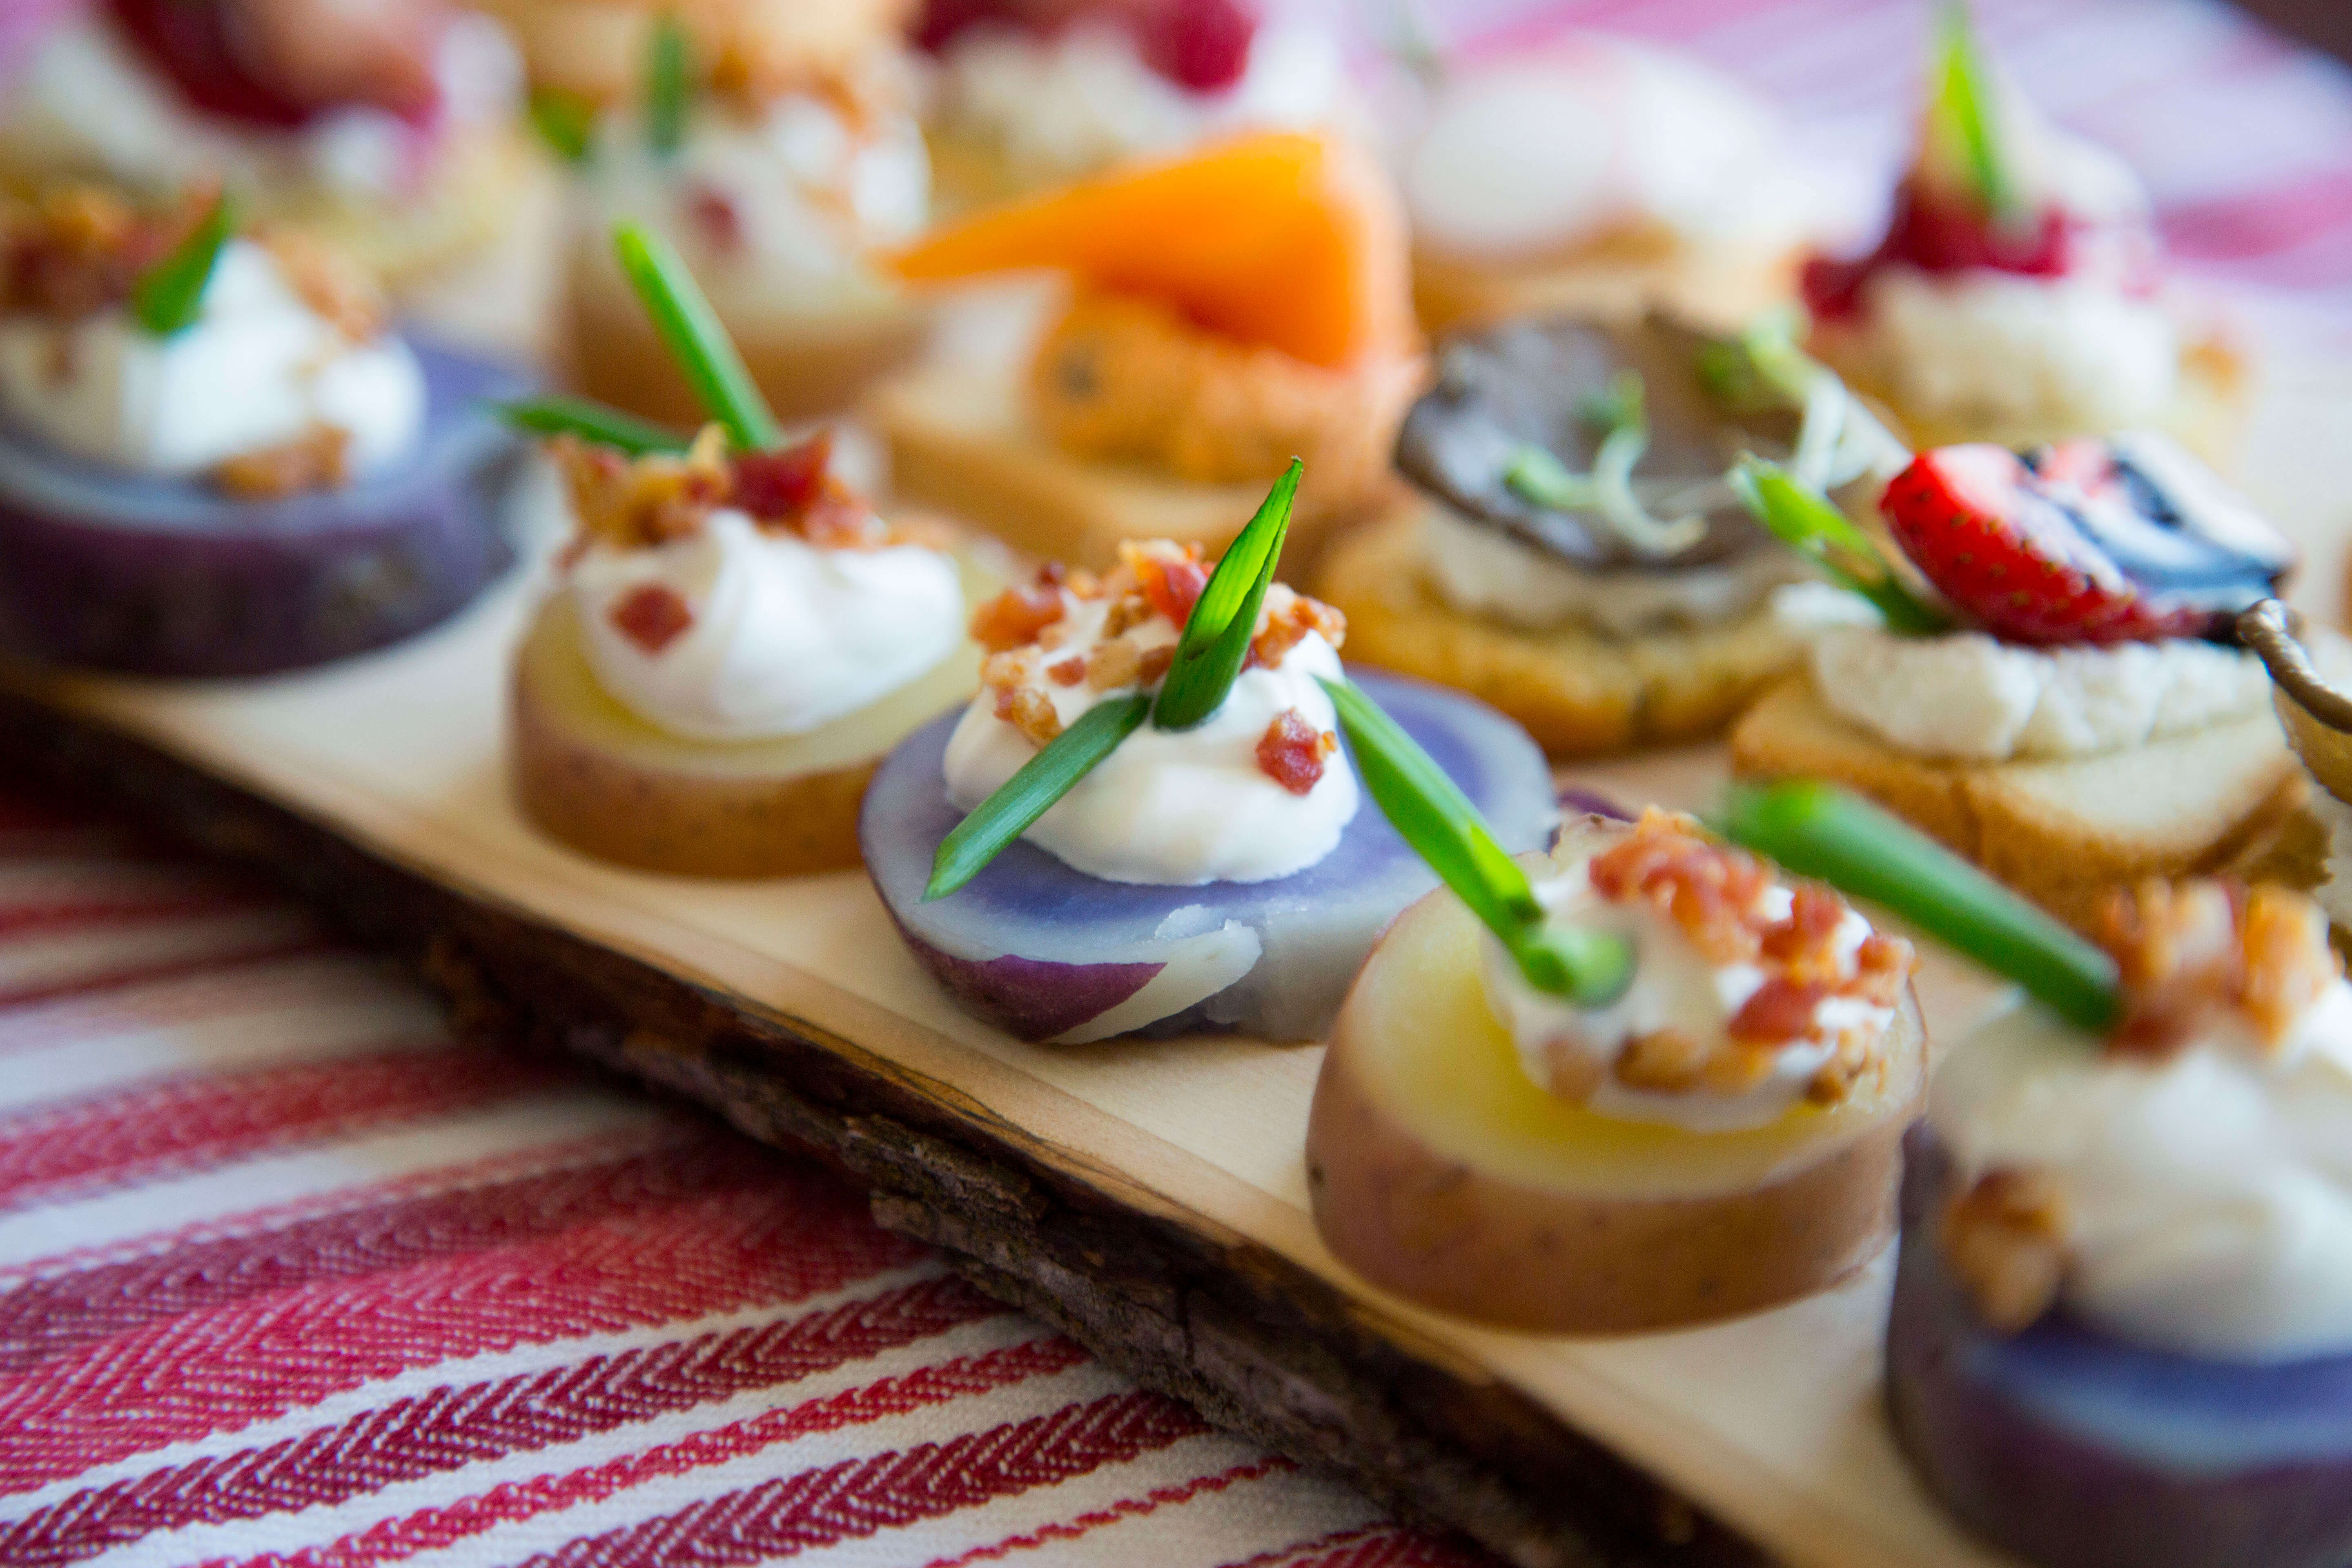 Canapes are the perfect hors d'oeurves for the holidays.